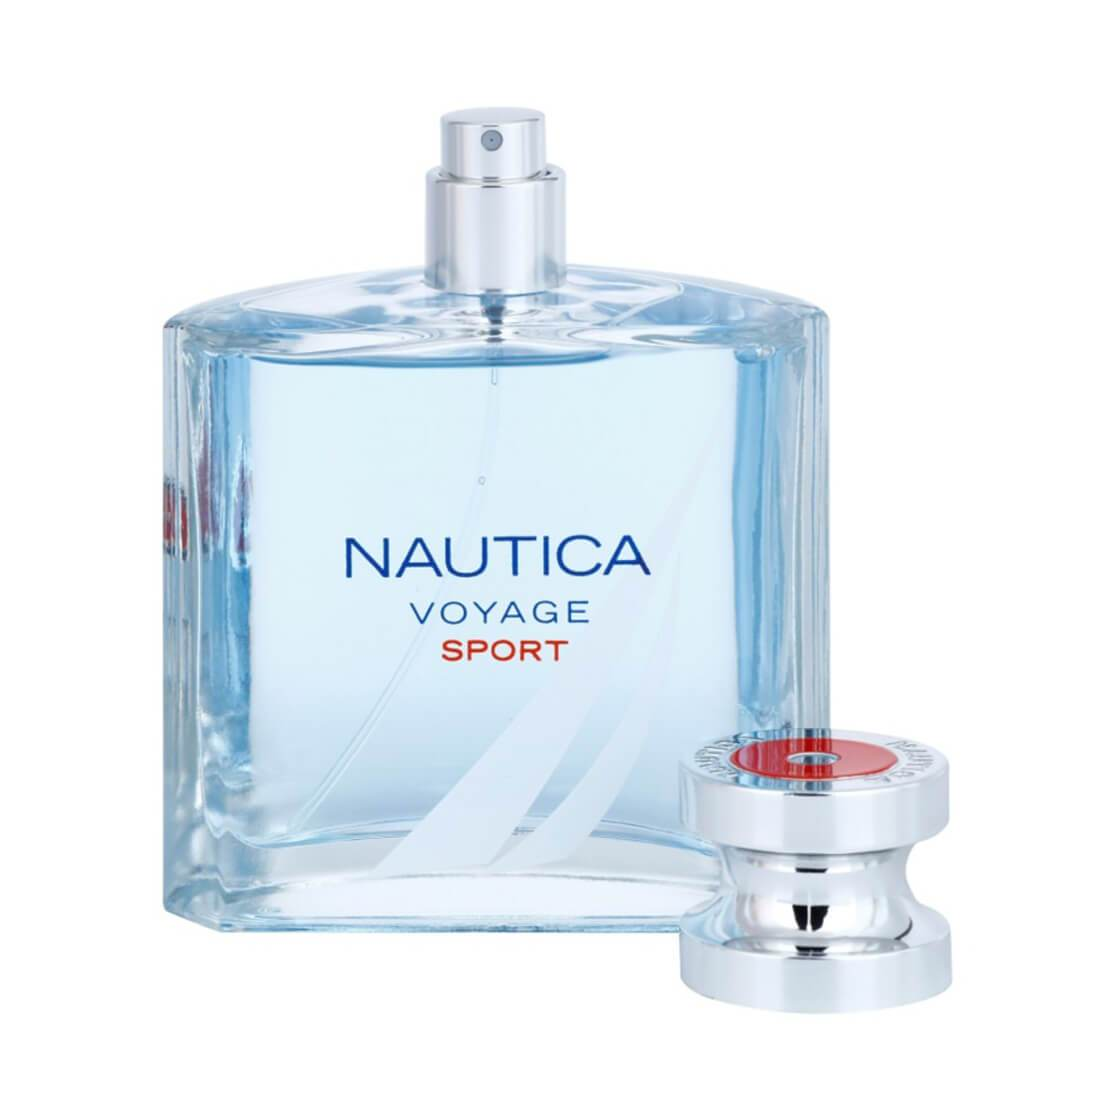 Nautica Voyage Sport Eau De Toilette For Men - 100ml